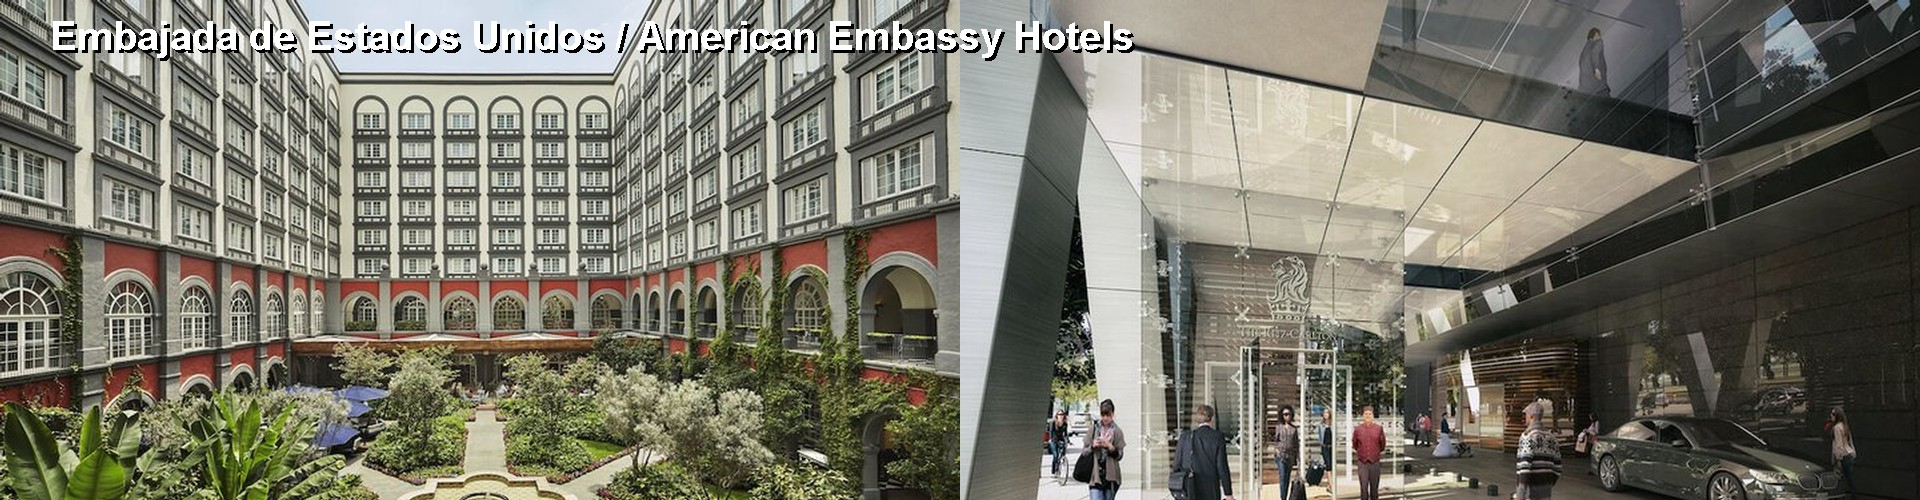 5 Best Hotels near Embajada de Estados Unidos / American Embassy